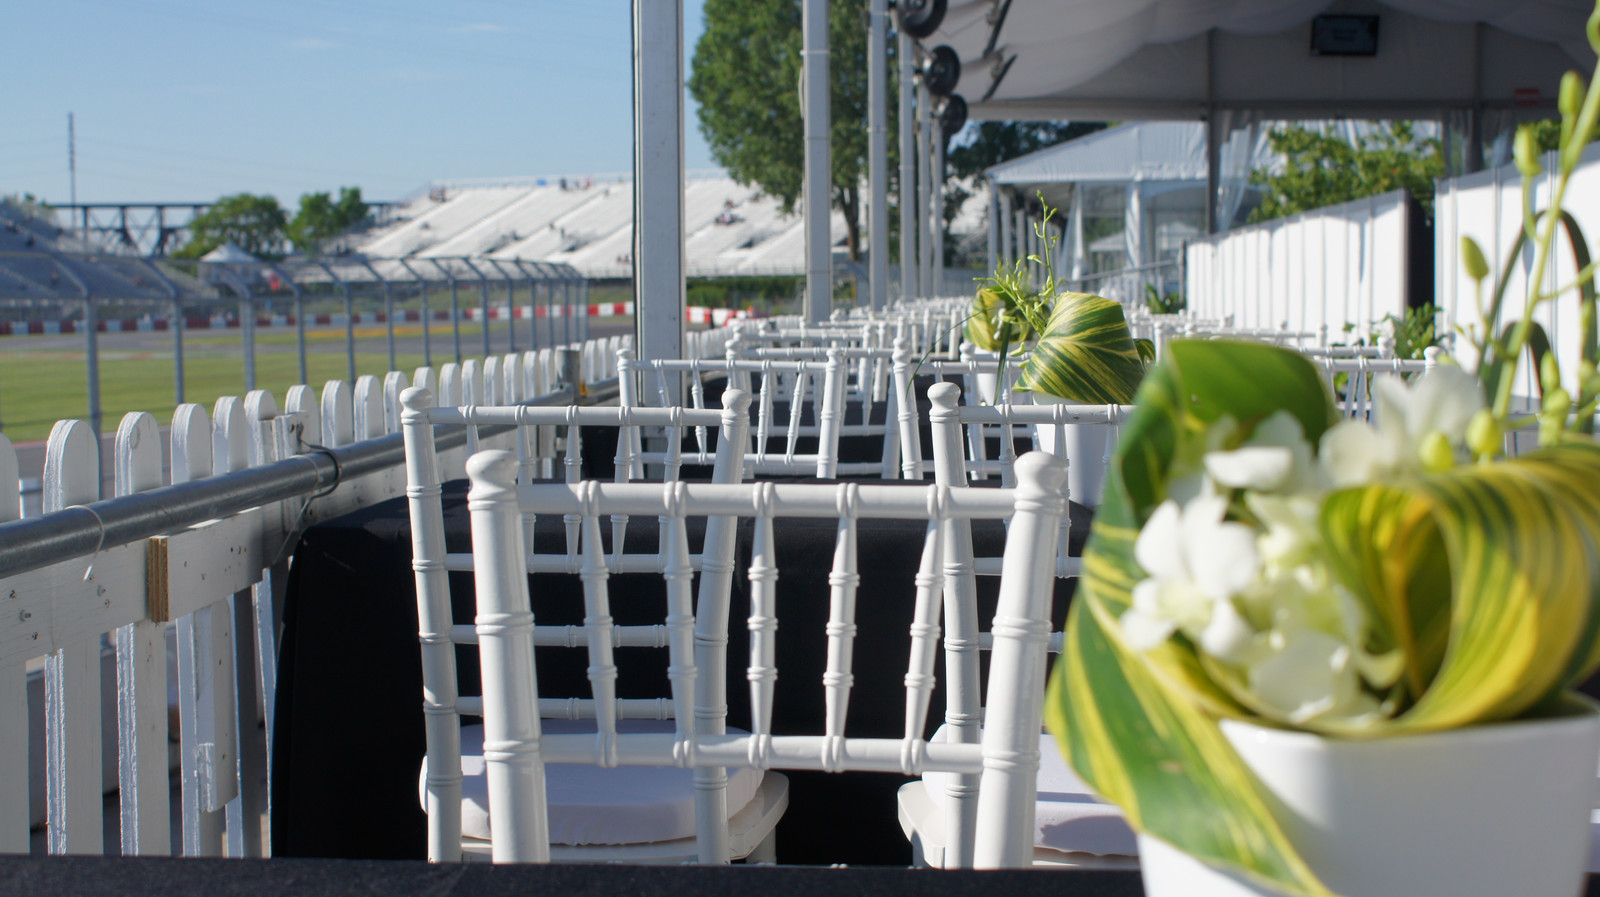 F1 Packages Hotels Amp Hospitality Photos Montreal